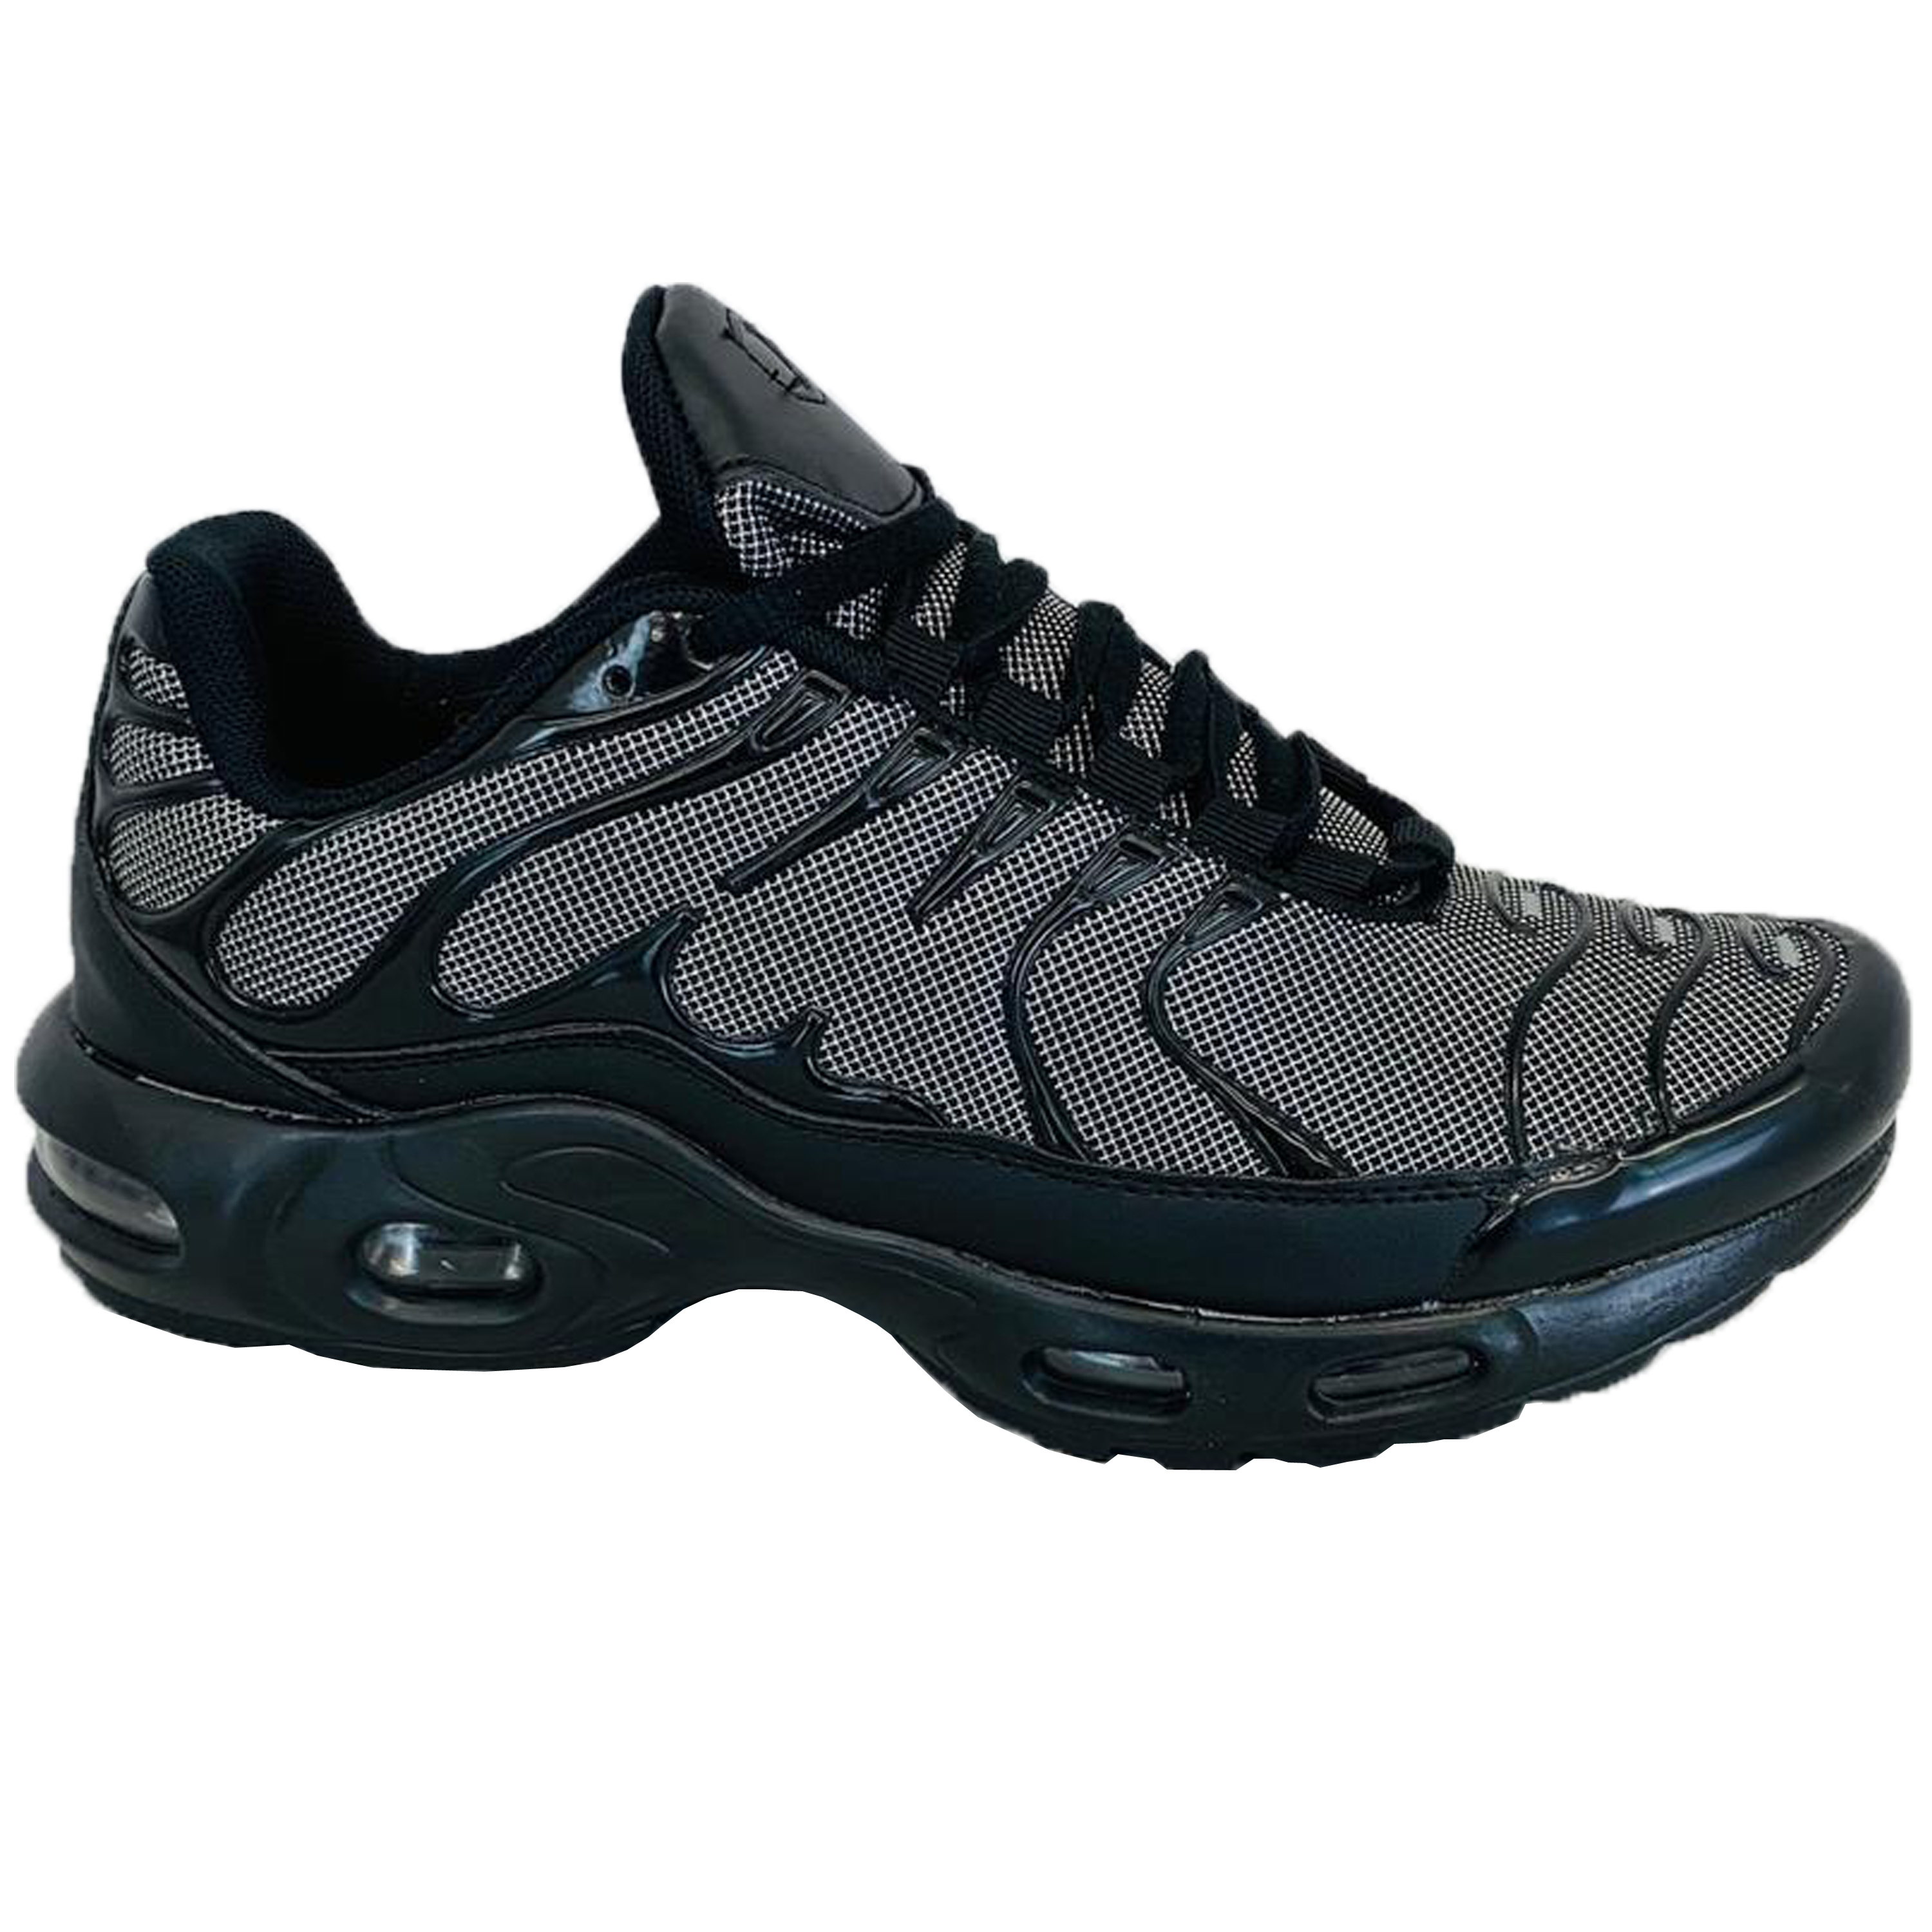 Mens-Bubble-Trainers-Lace-Up-Running-Shoes-Sneakers-Sports-Jogging-Fitness-Gym thumbnail 9